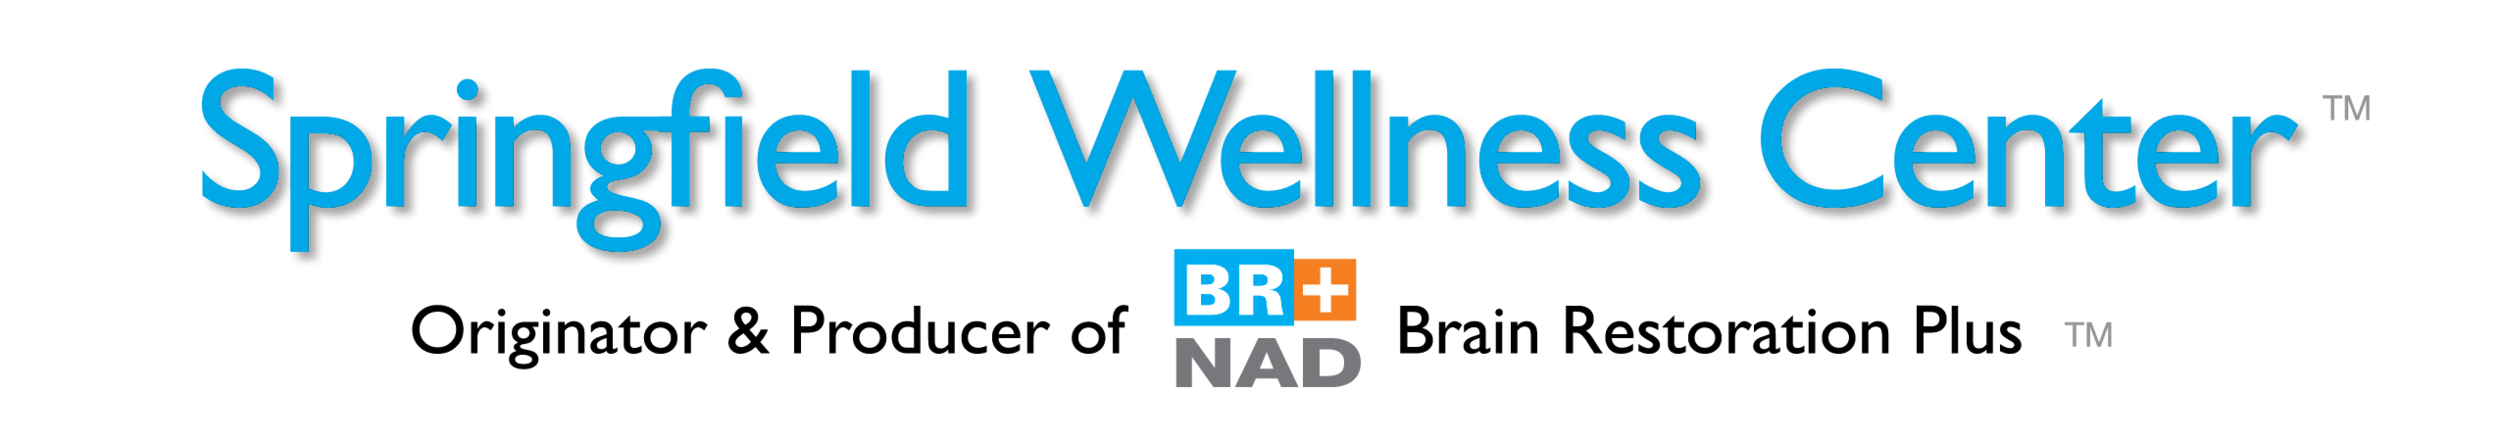 BR+NAD new logo.png